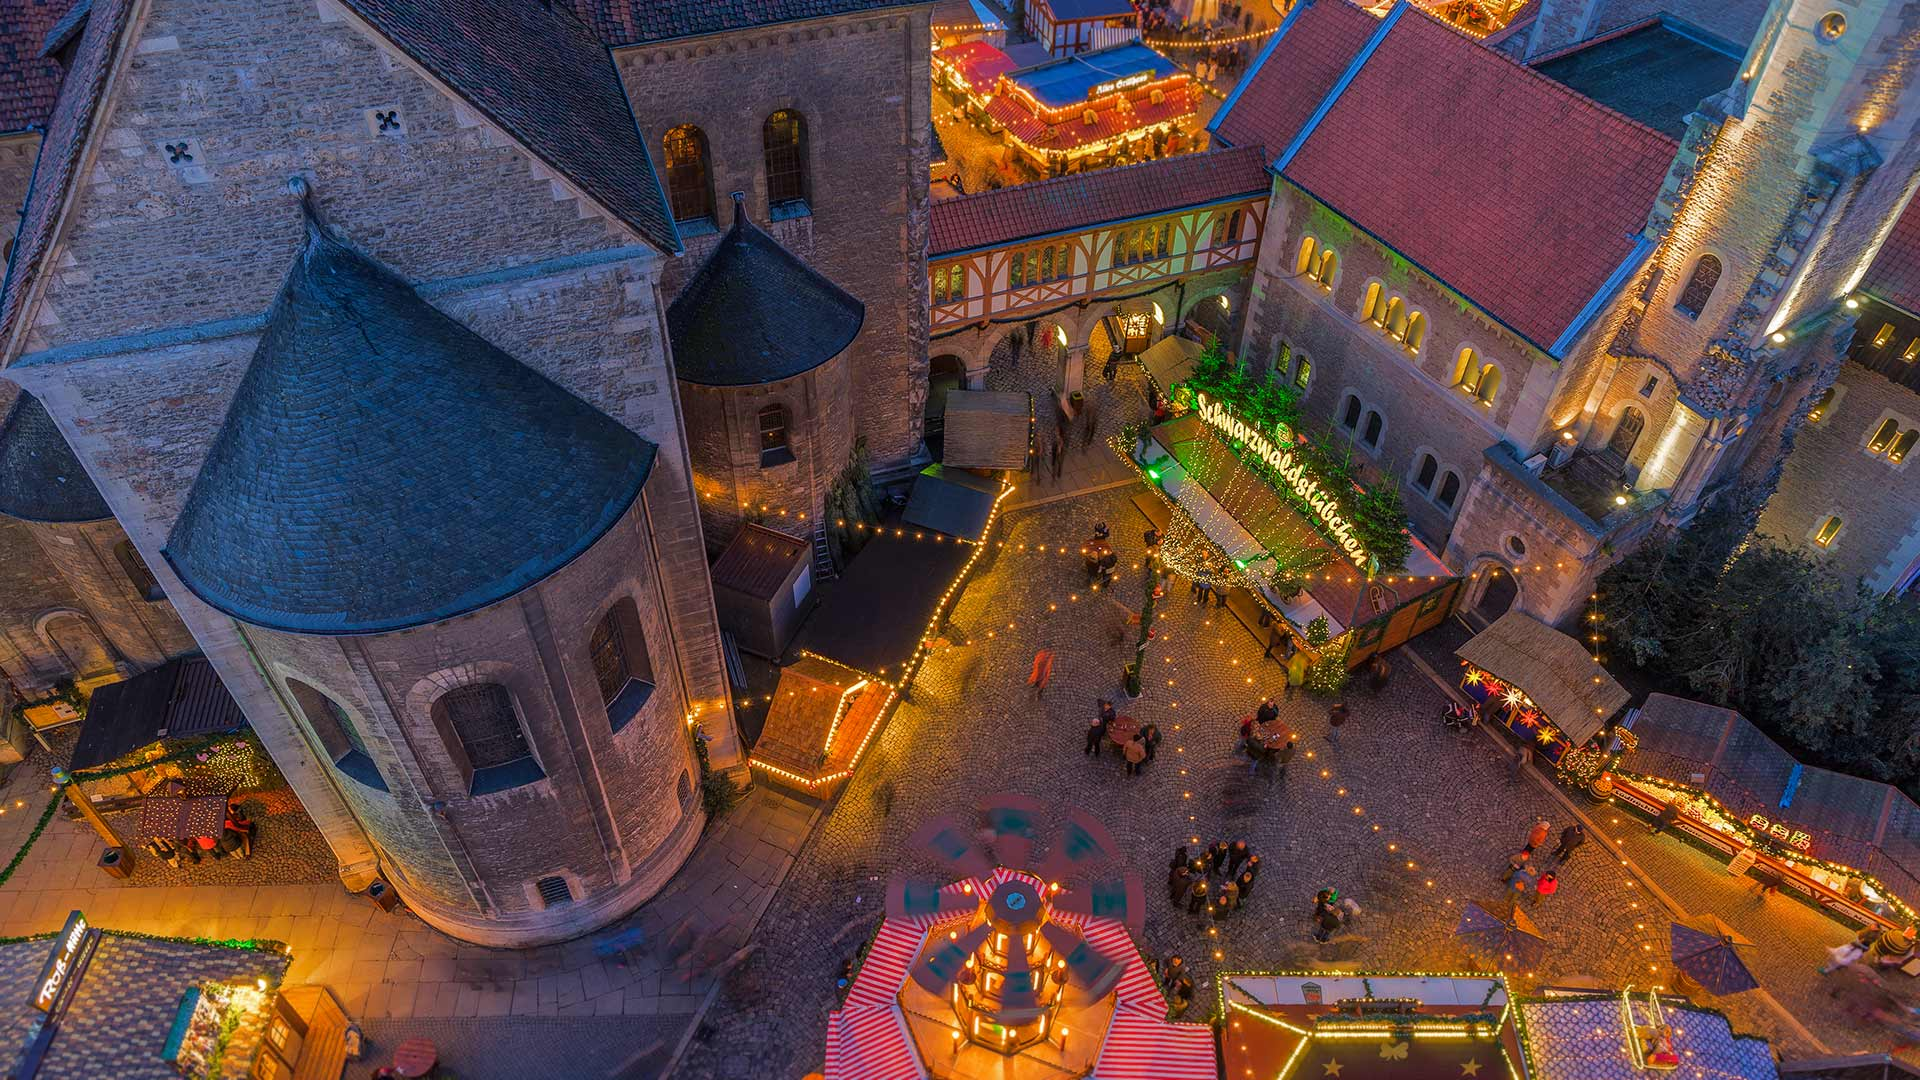 Christmas market in Braunschweig, Germany (© Patrice von Collani/plainpicture)